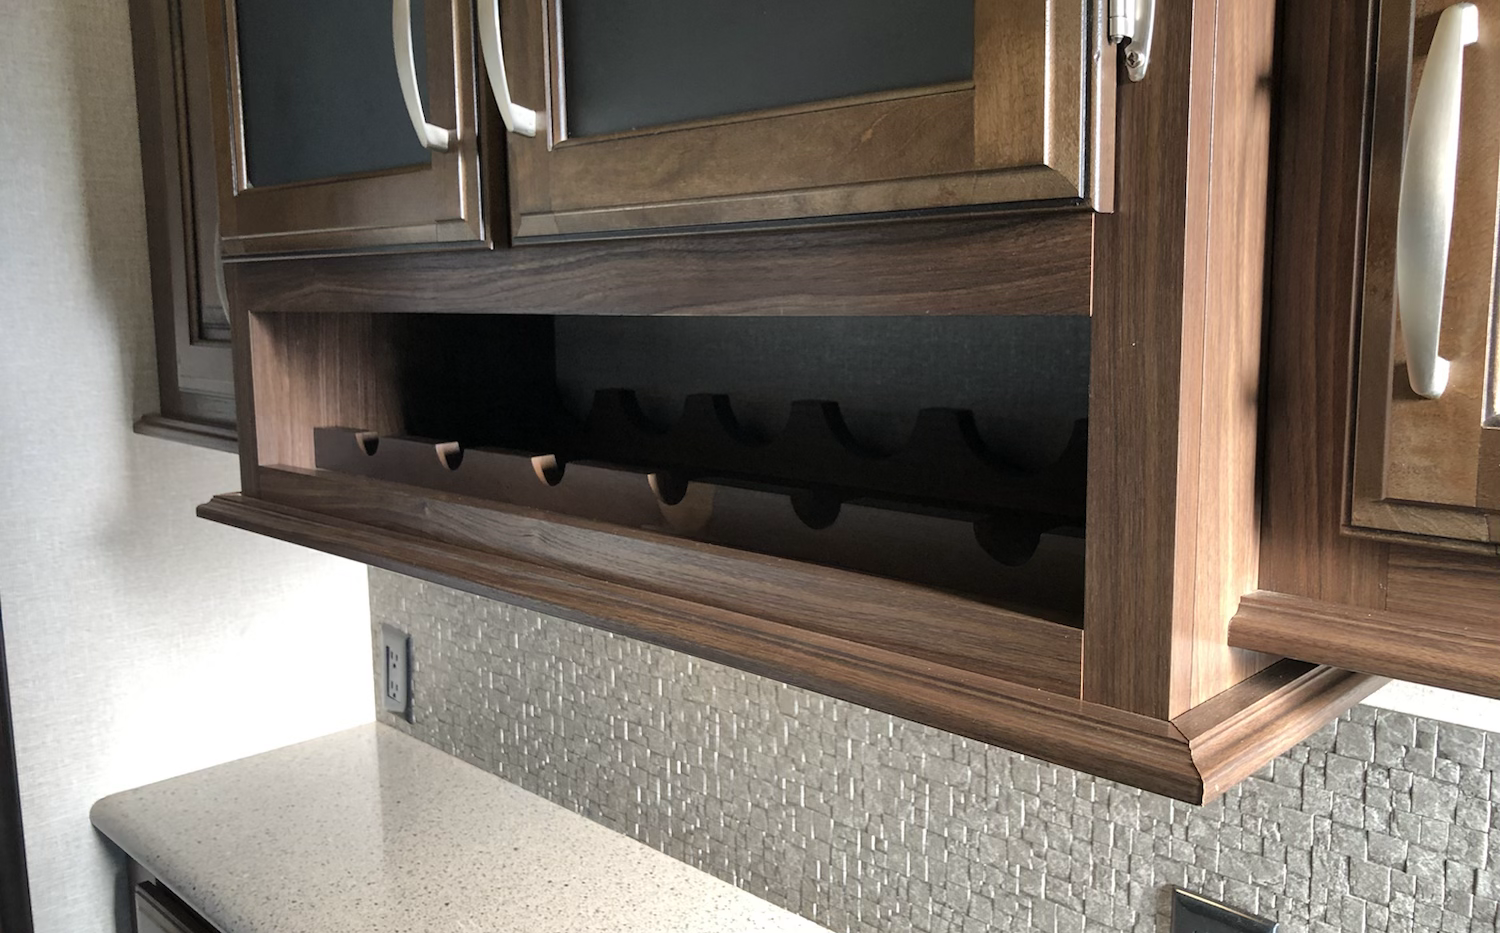 Wine rack in kitchen